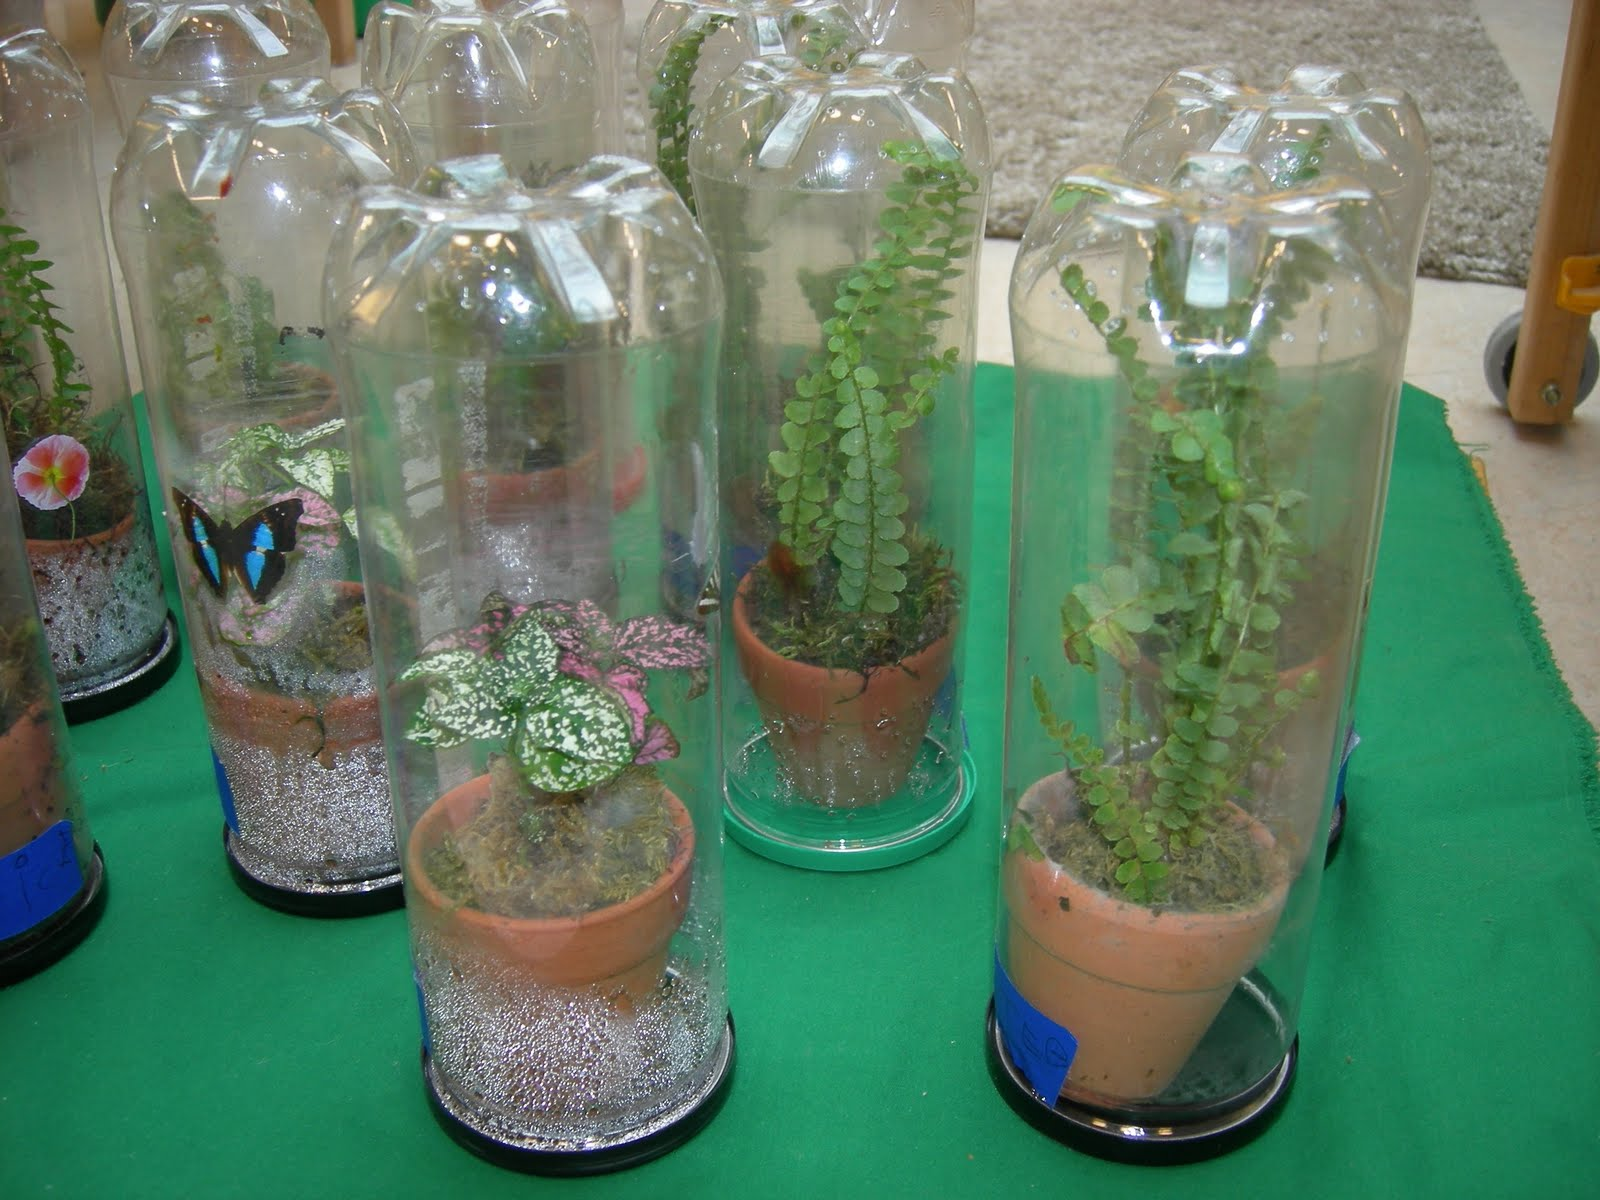 How to Recycle: Another Upcycling and Recycling Ideas!